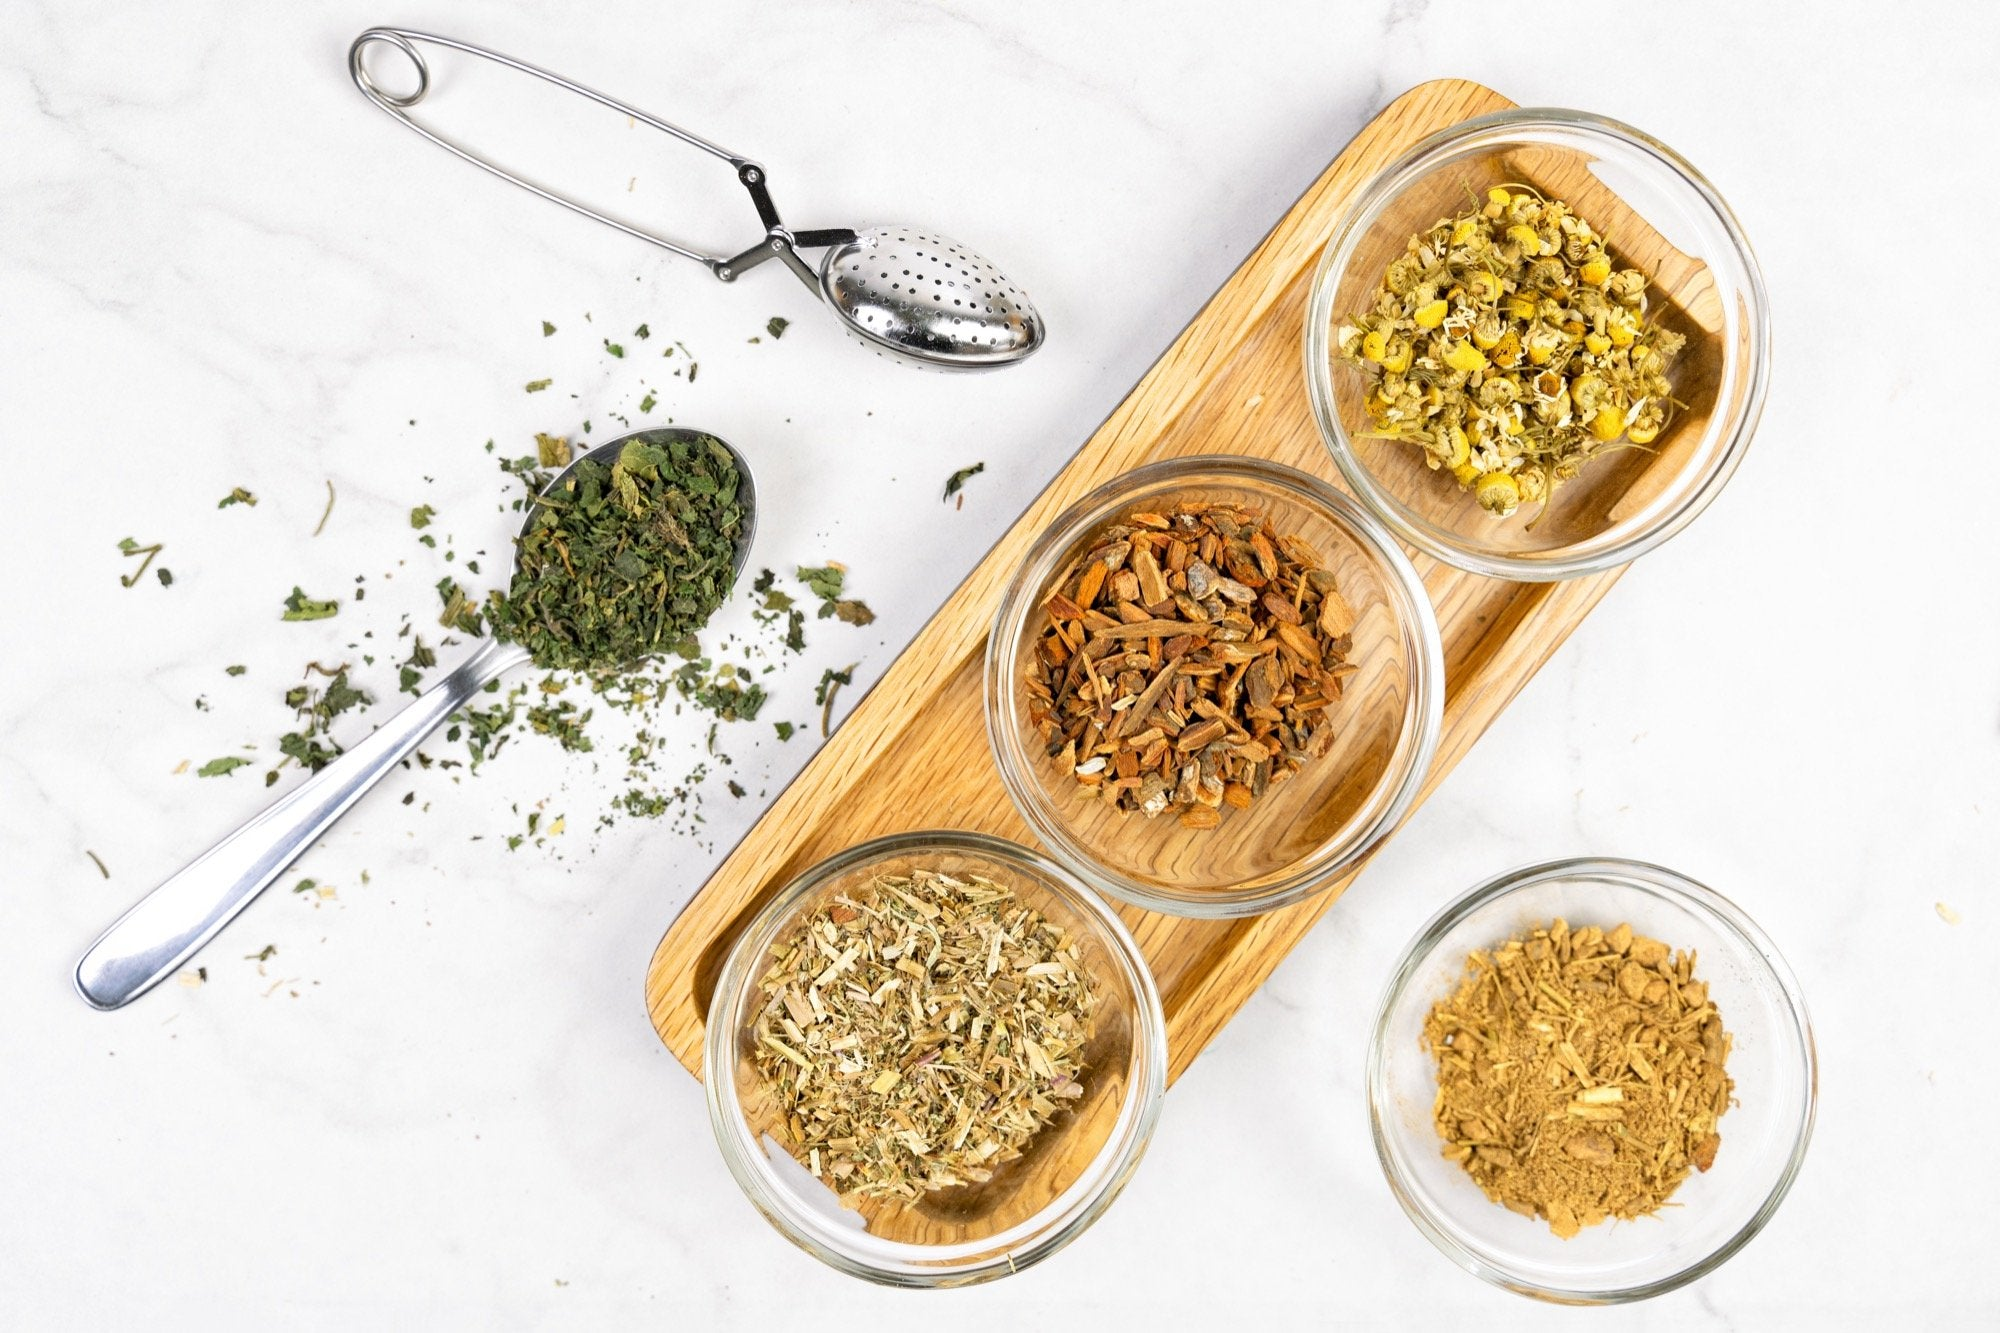 6 Unique Herbs Every Home Cook Should Have In Their Kitchen